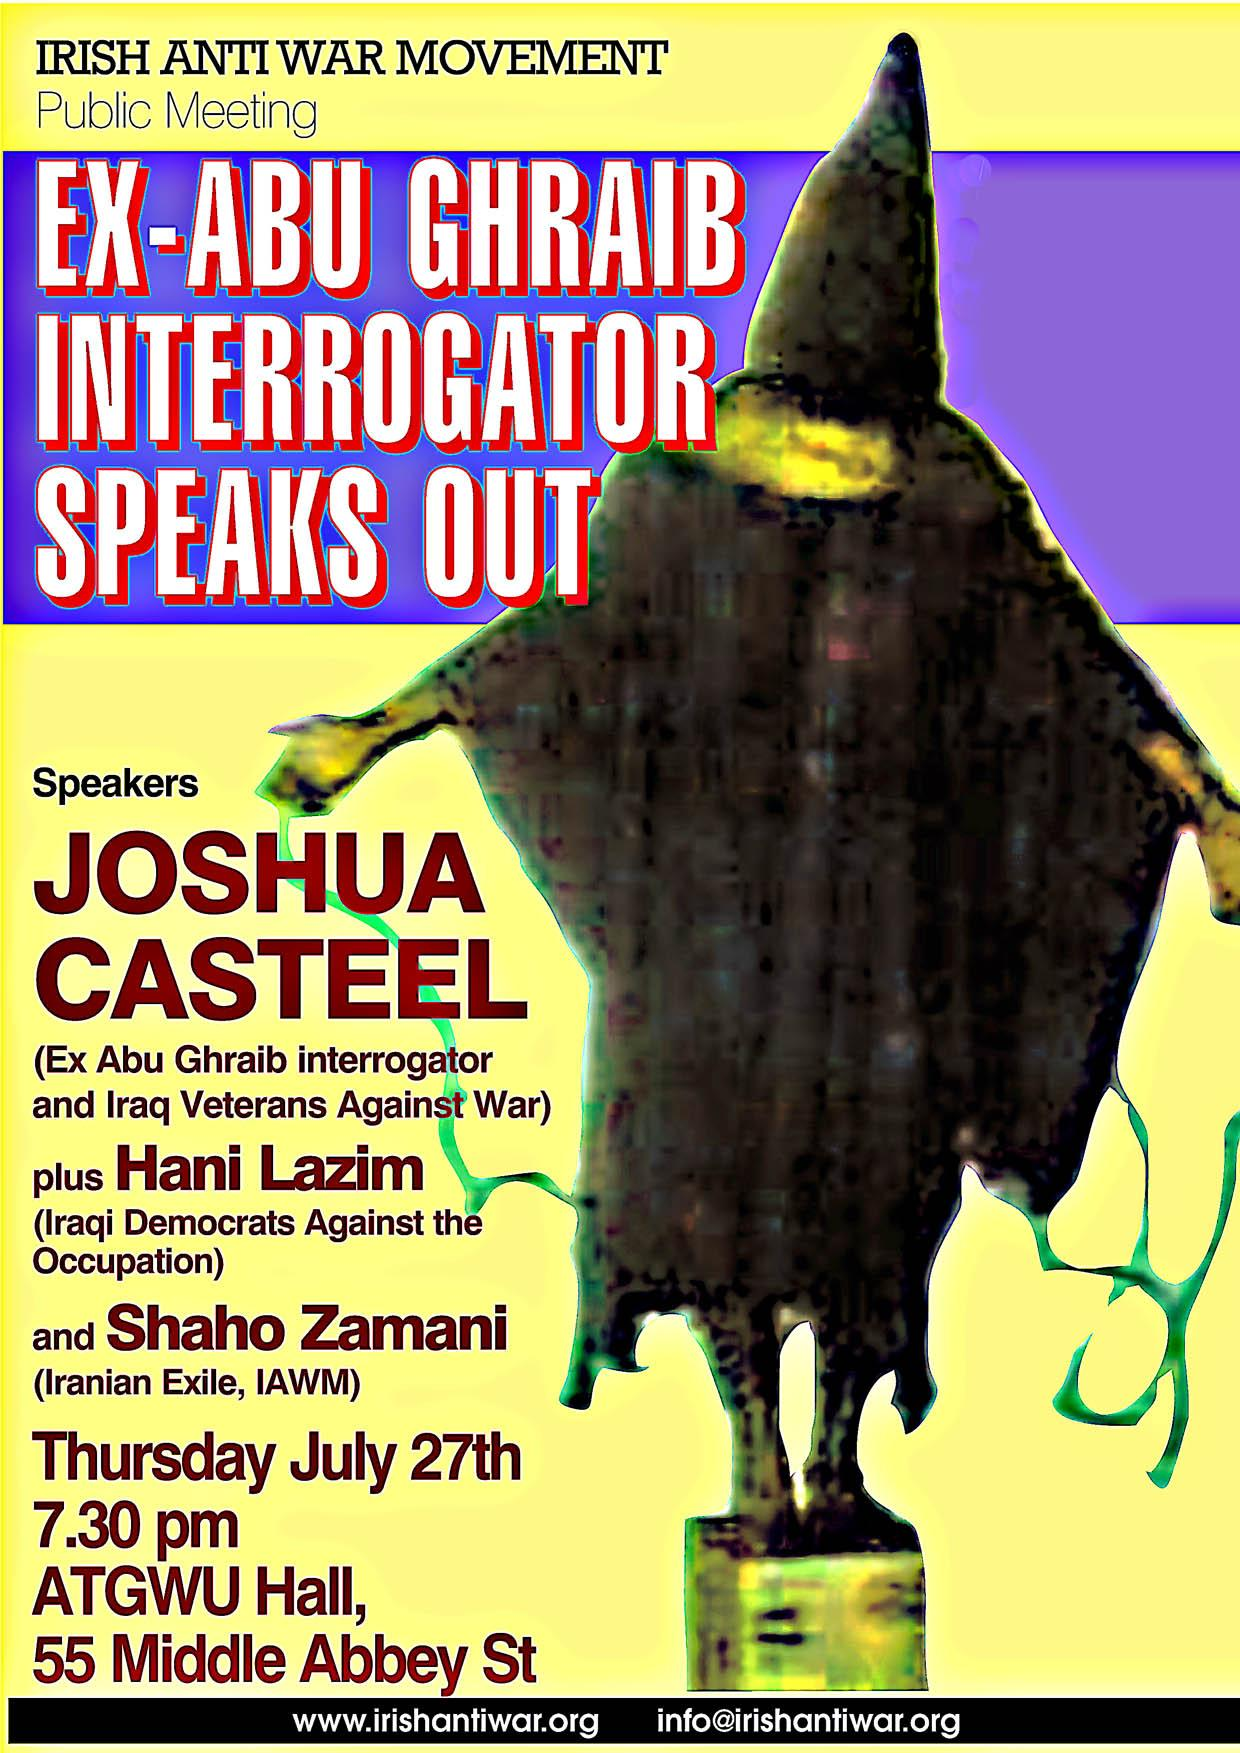 27th July 2005 Joshua Casteel Ex-Abu Ghraib Interrigator Speaks in Dublin